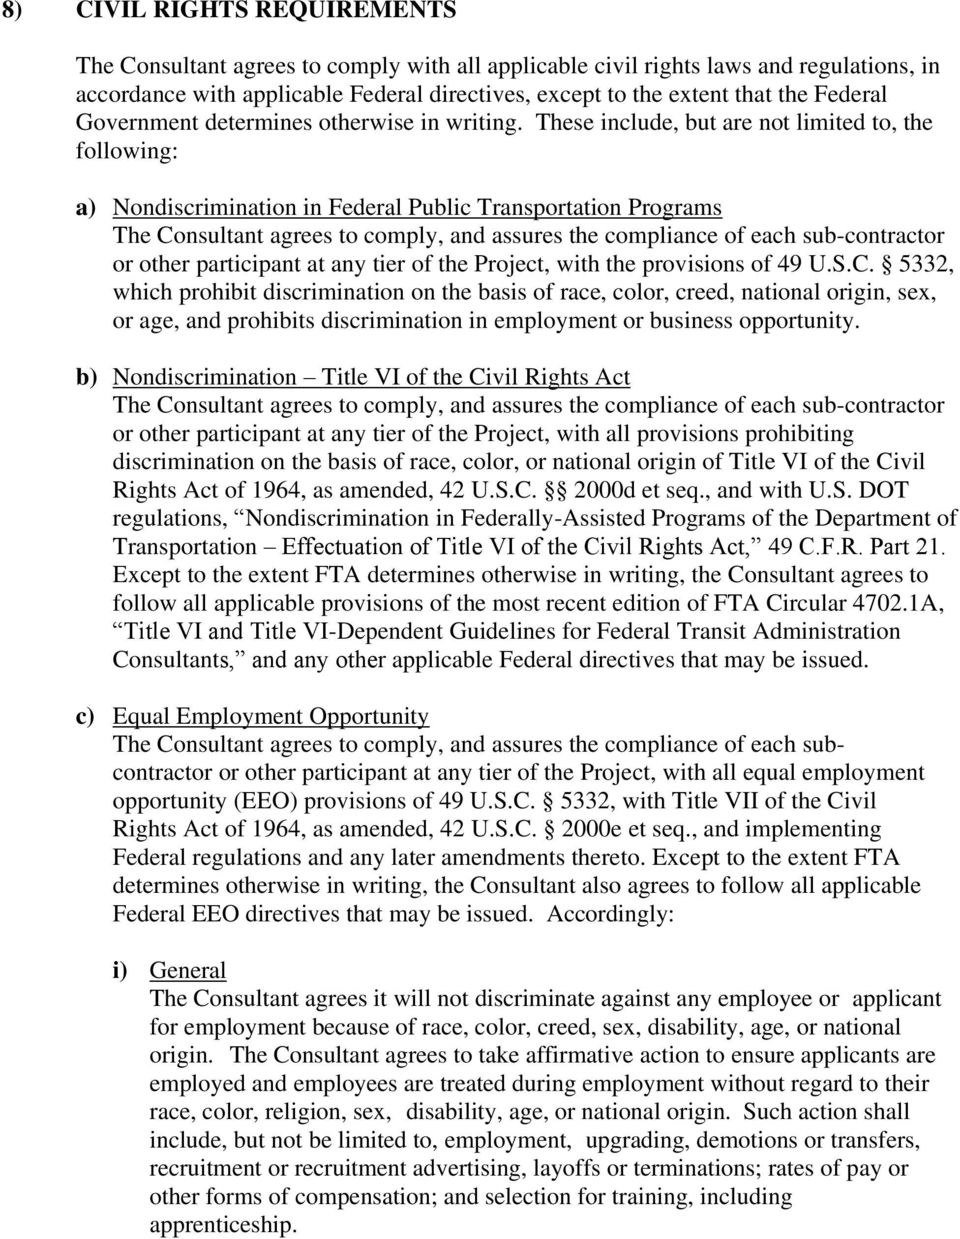 These include, but are not limited to, the following: a) Nondiscrimination in Federal Public Transportation Programs The Consultant agrees to comply, and assures the compliance of each sub-contractor